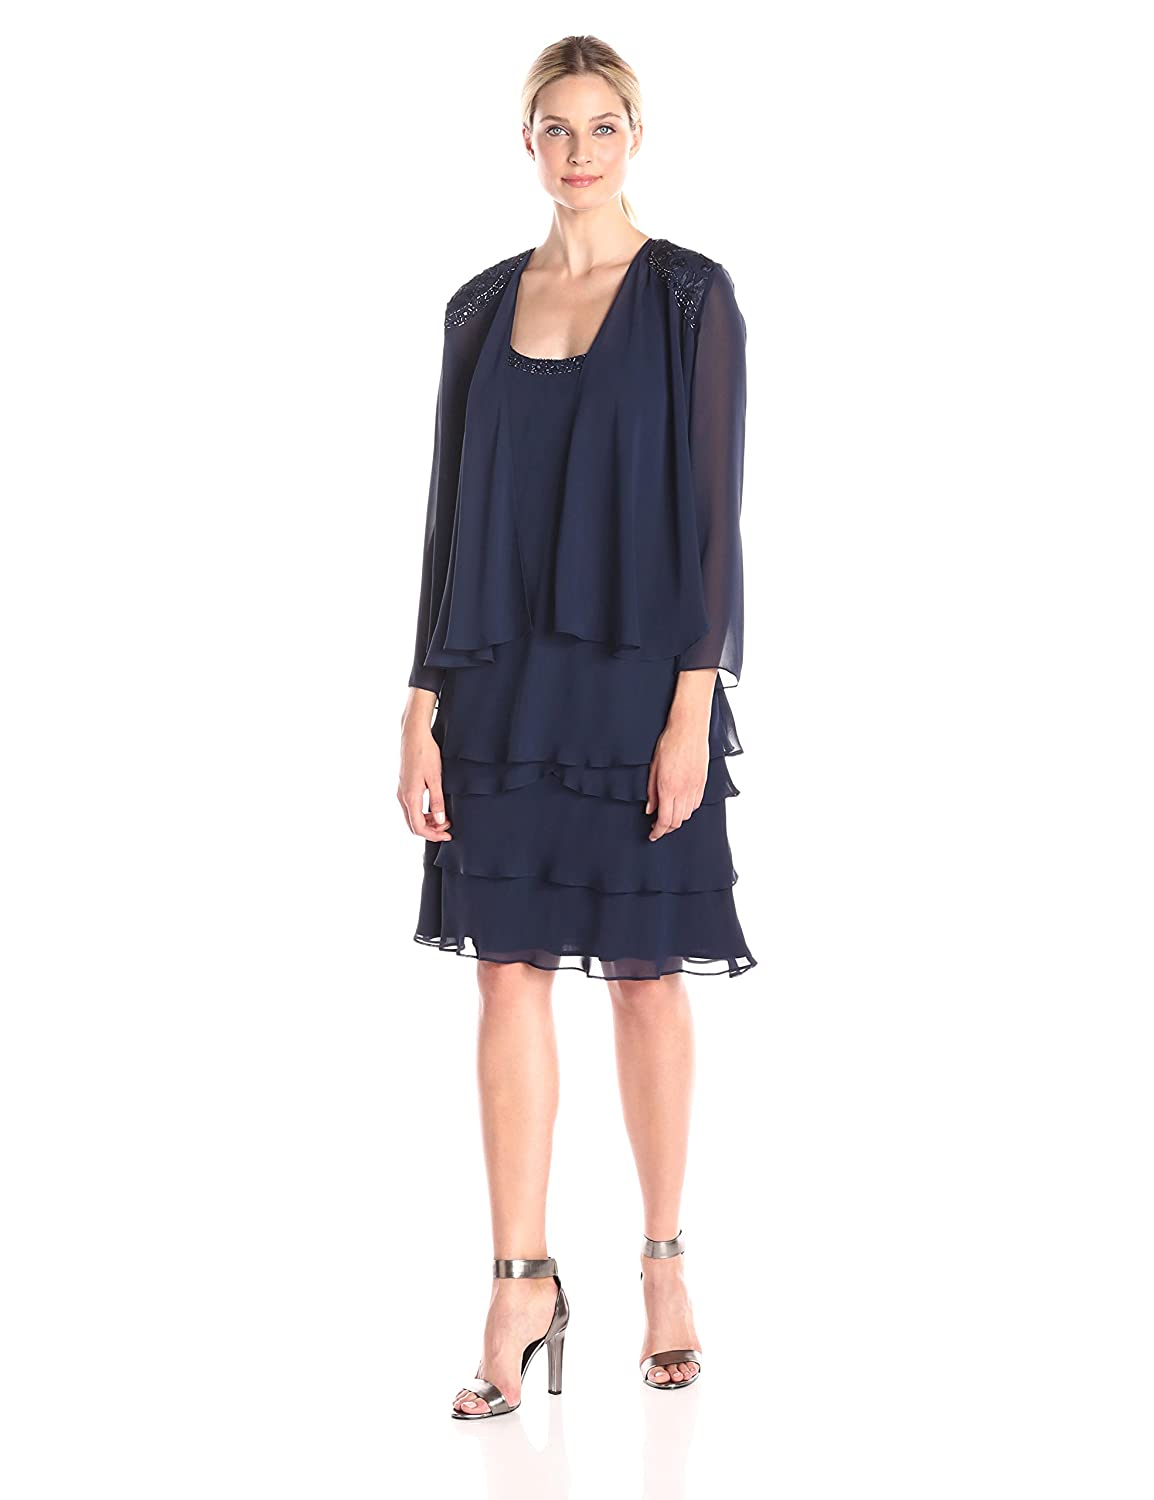 S.L. Fashions Women's Embellished Tiered Dress with Jacket S.L. Fashions Dresses 122372